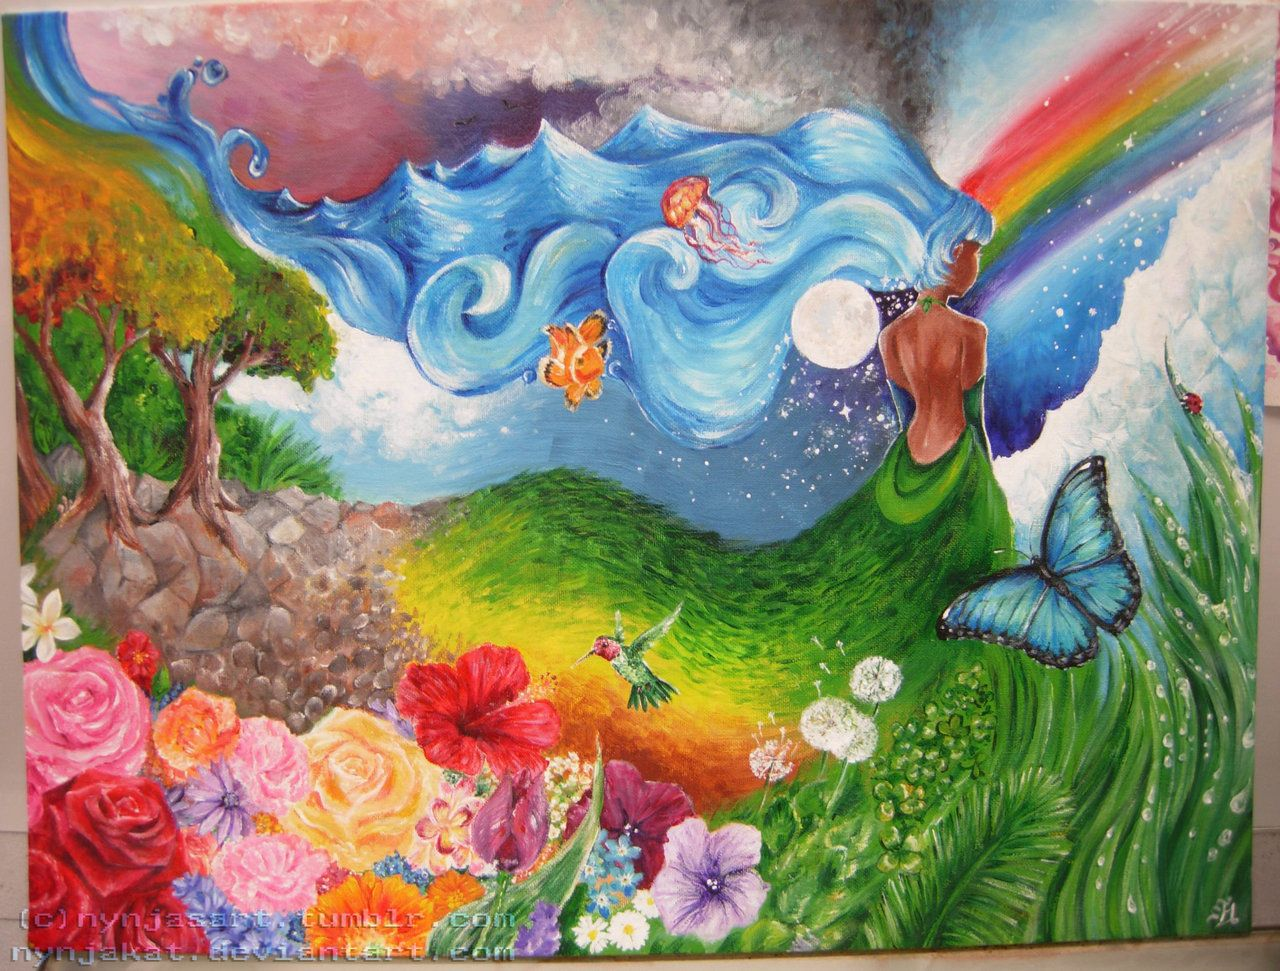 Mother Nature Art Mother Nature By Nynjakat On Deviantart Mother Nature Nature Paintings Art